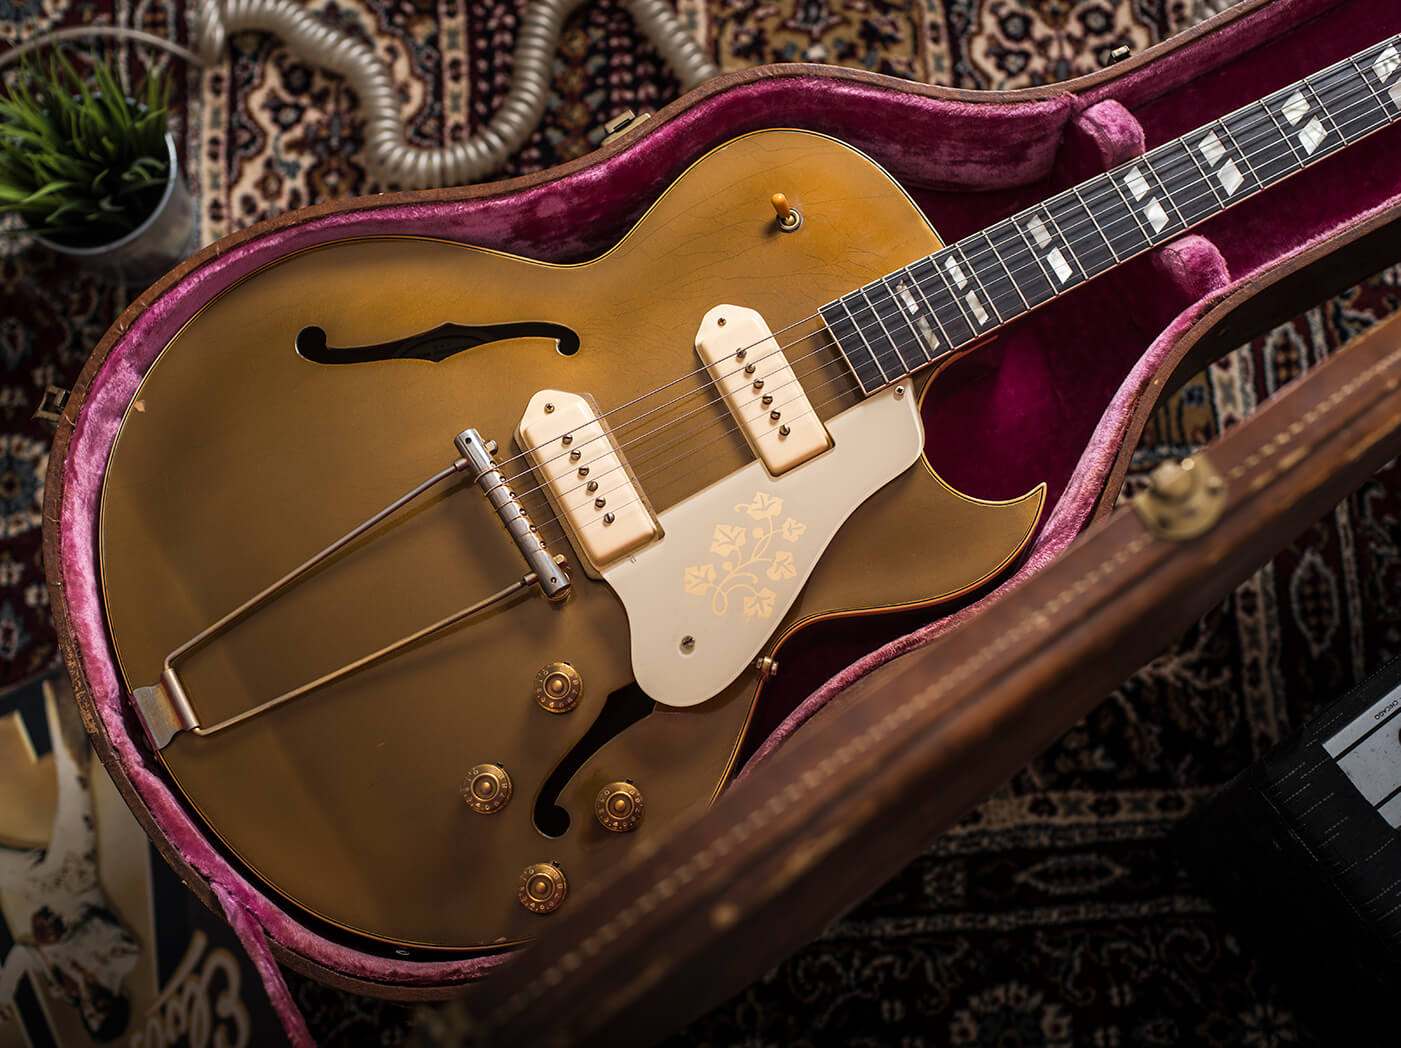 Gibson's ES-295 kickstarted rock 'n' roll, and this 1953 specimen is a heartbreaker